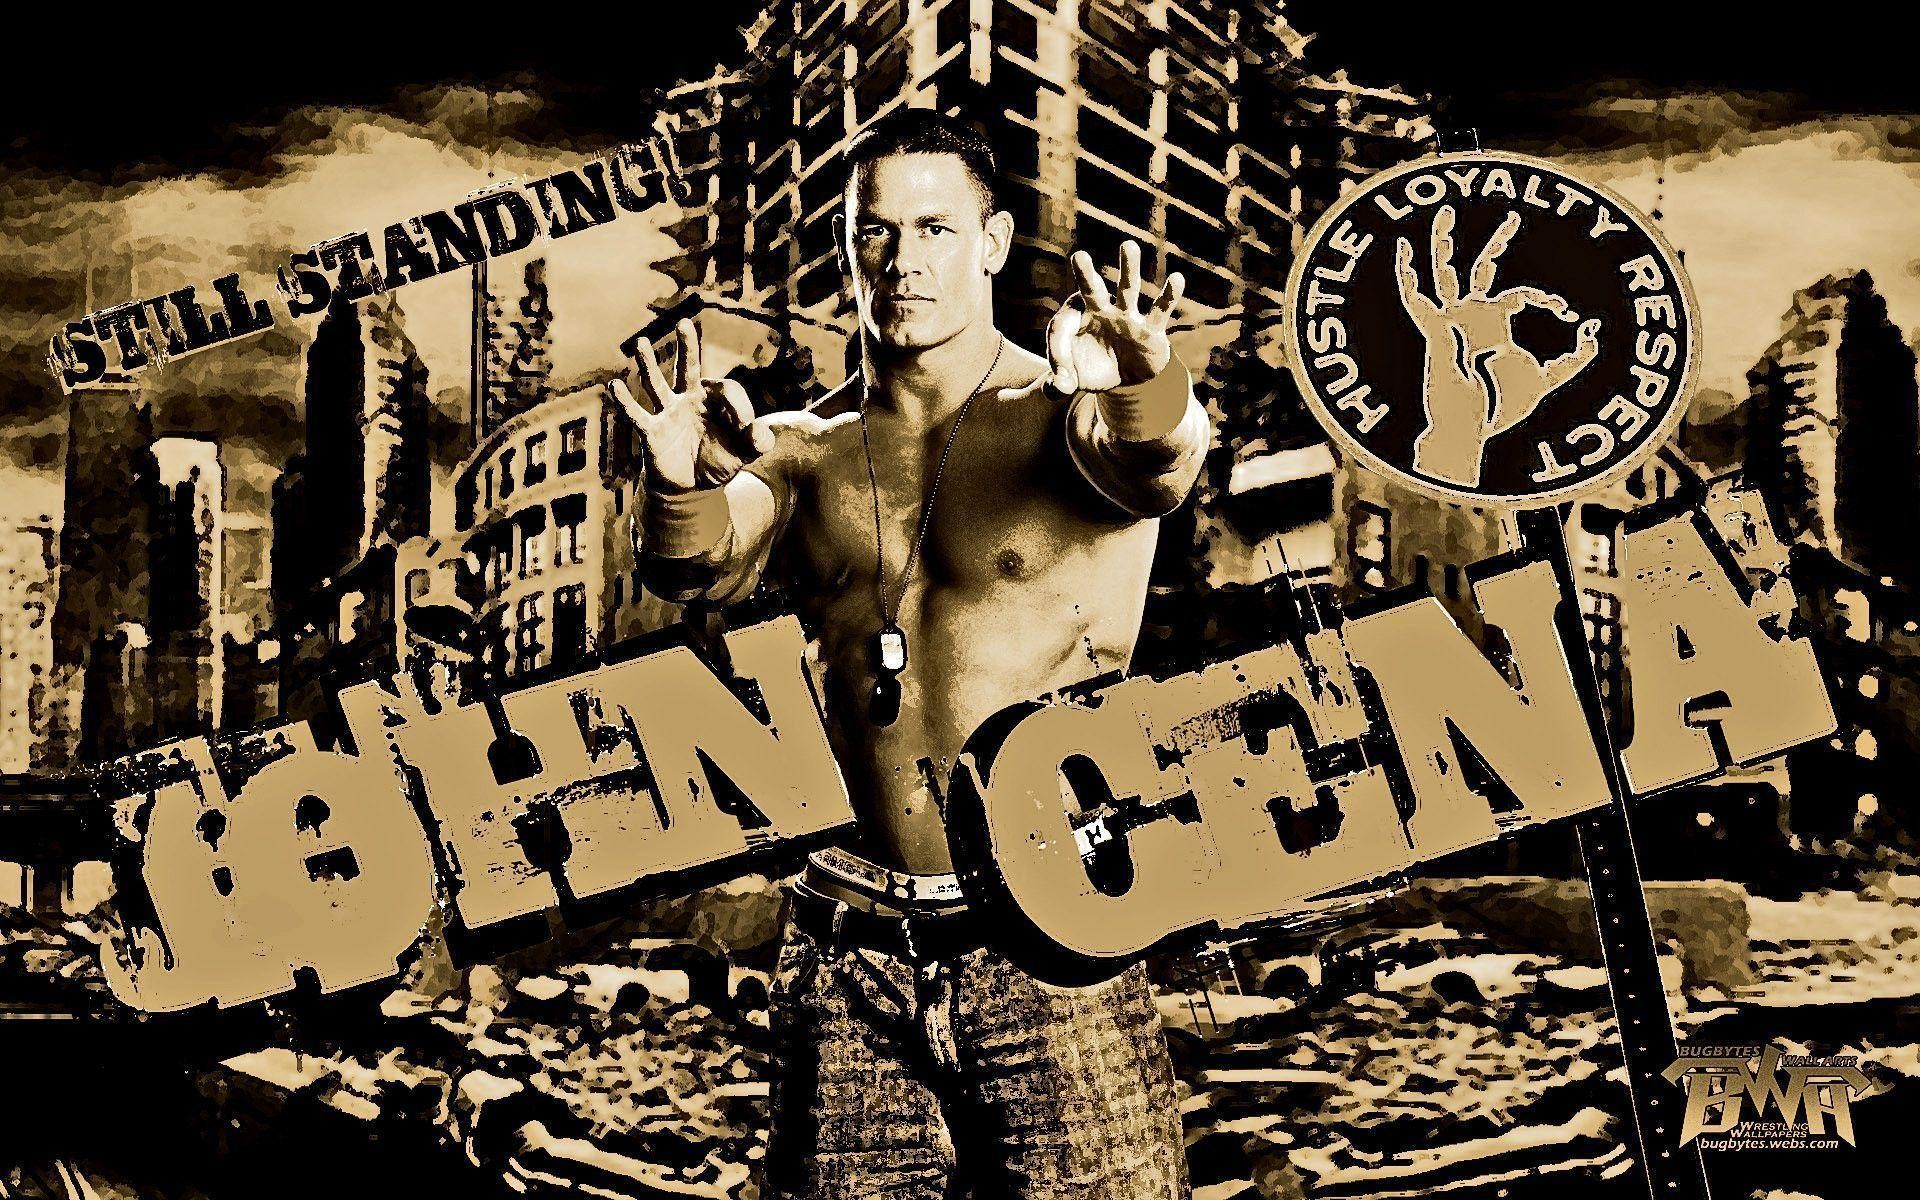 john cena wallpaper rise above hate (63+ images)